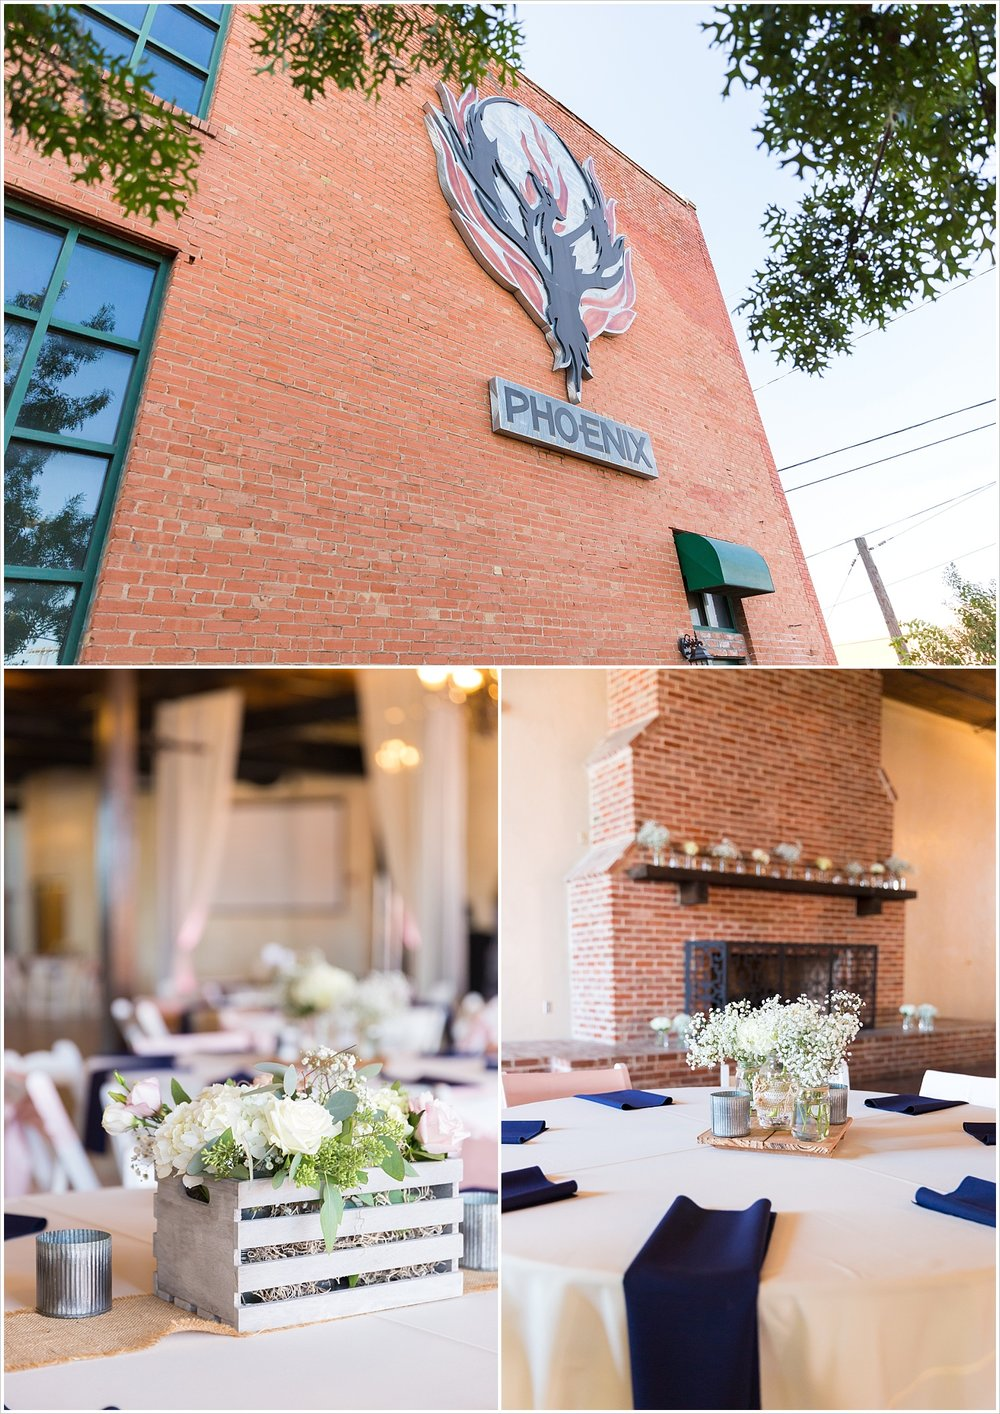 Details from navy and blush Texas Reception at The Phoenix Ballroom, Jason & Melaina Photography - www.jasonandmelaina.com